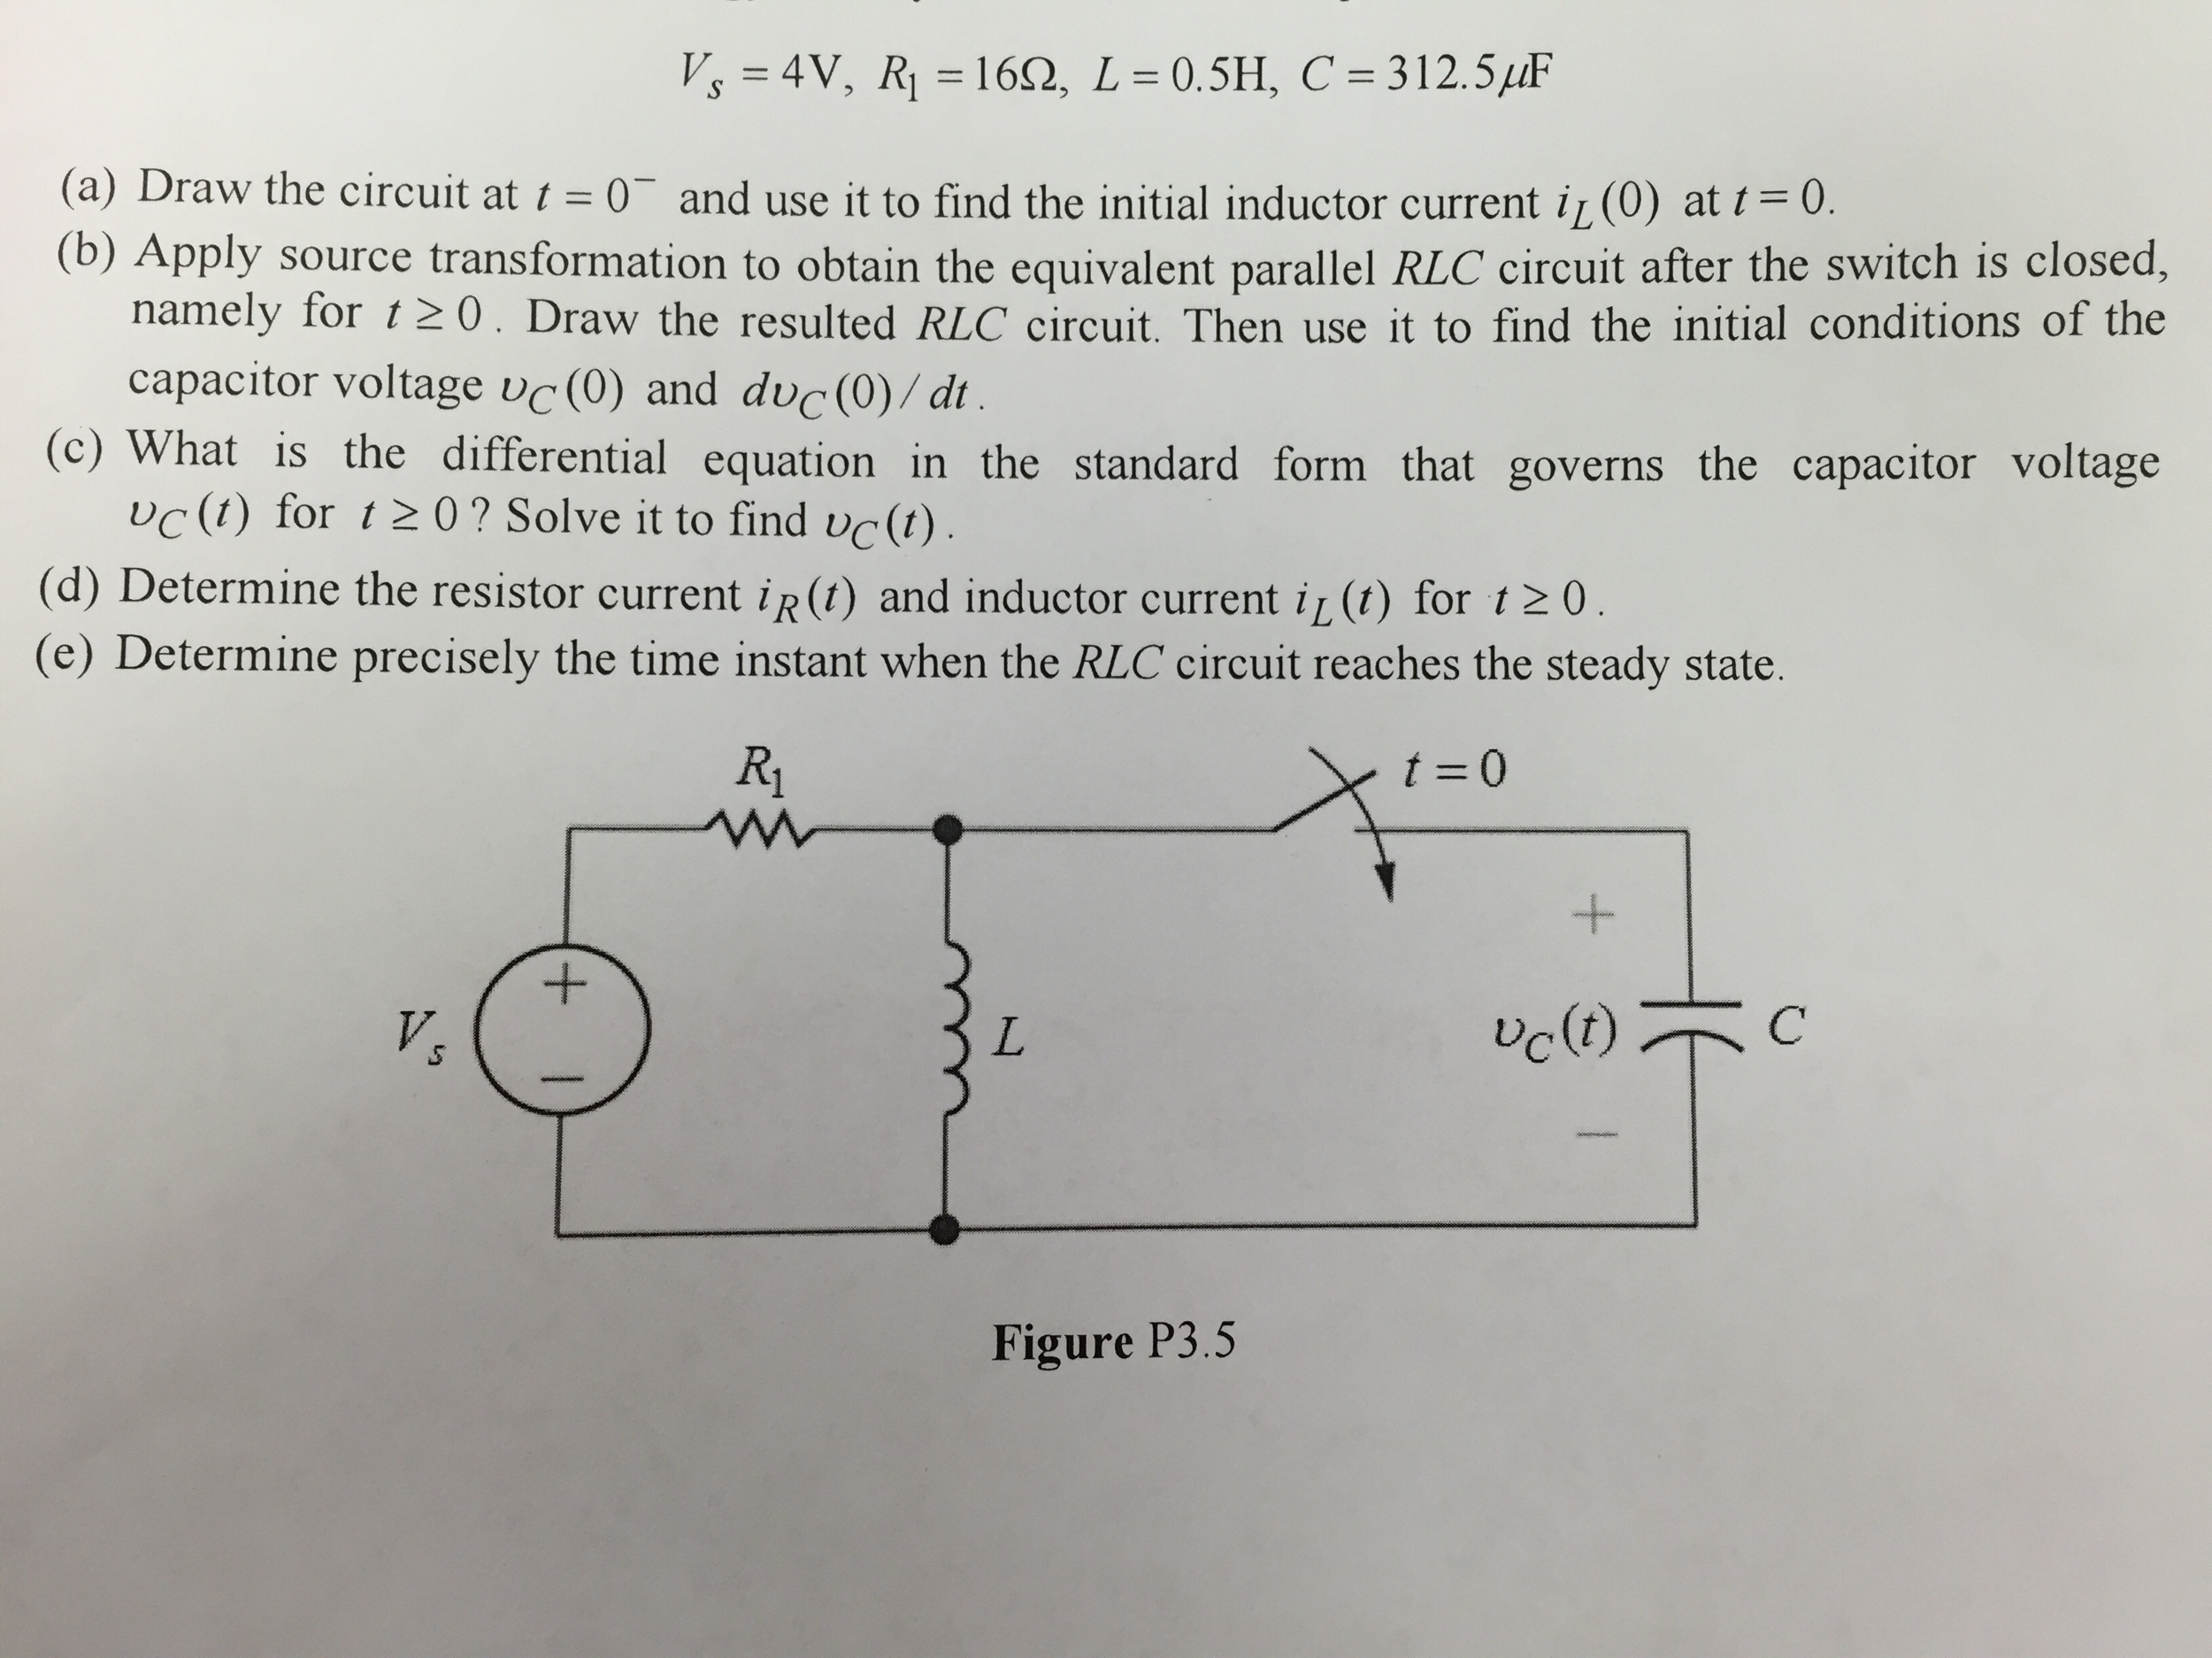 Solved: The Switch In The RLC Circuit Is Closed At T=0 Aft ...